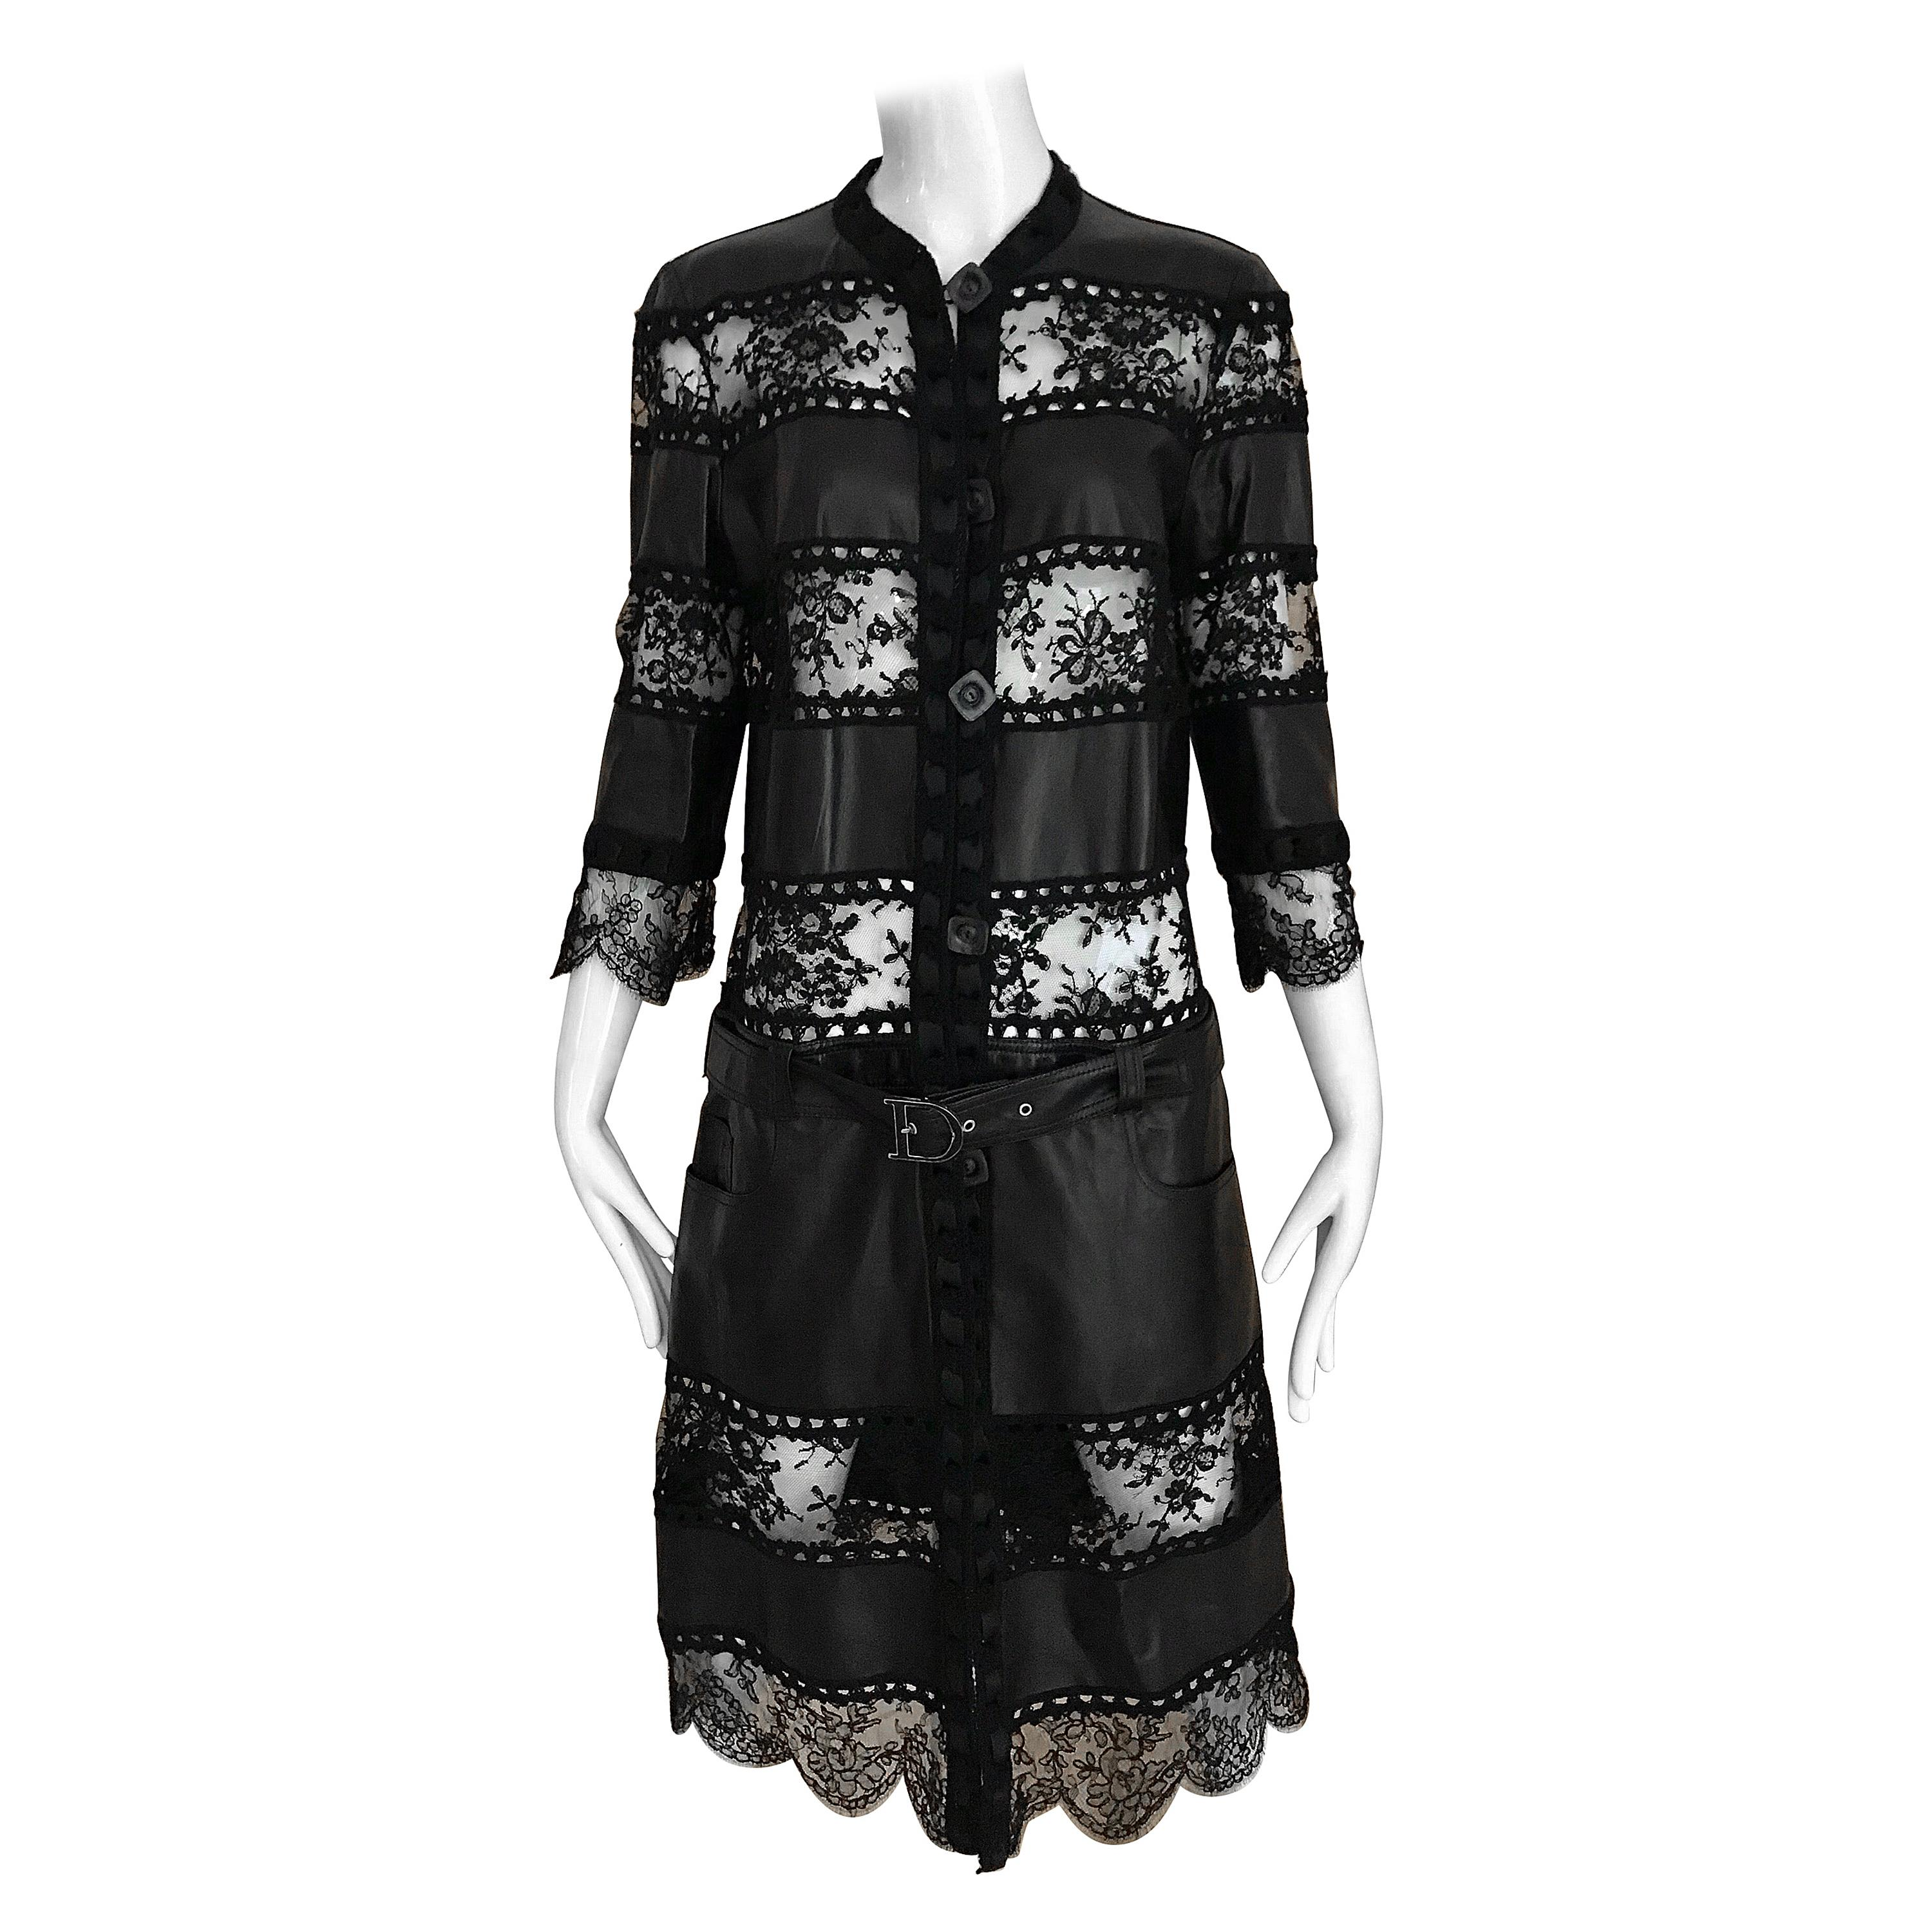 Christian Dior Black Leather Lace Dress By John Galliano